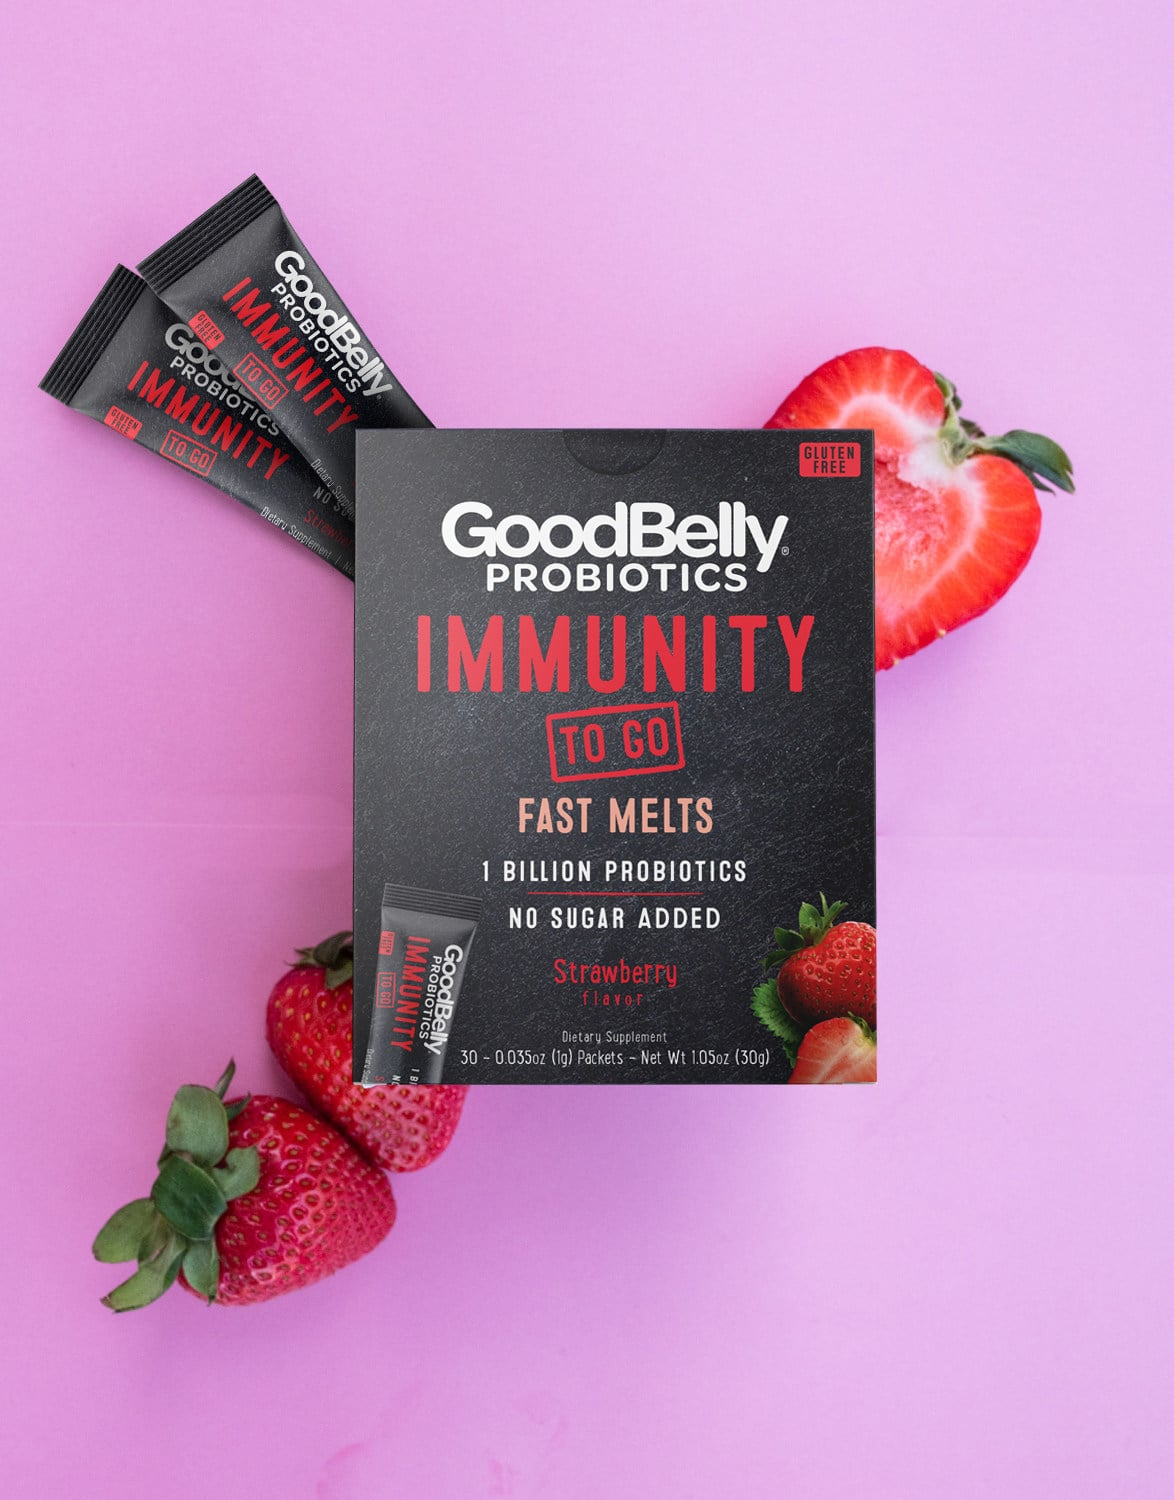 GoodBelly Launches Fast Melts For On-The-Go Immune System And Digestion Support